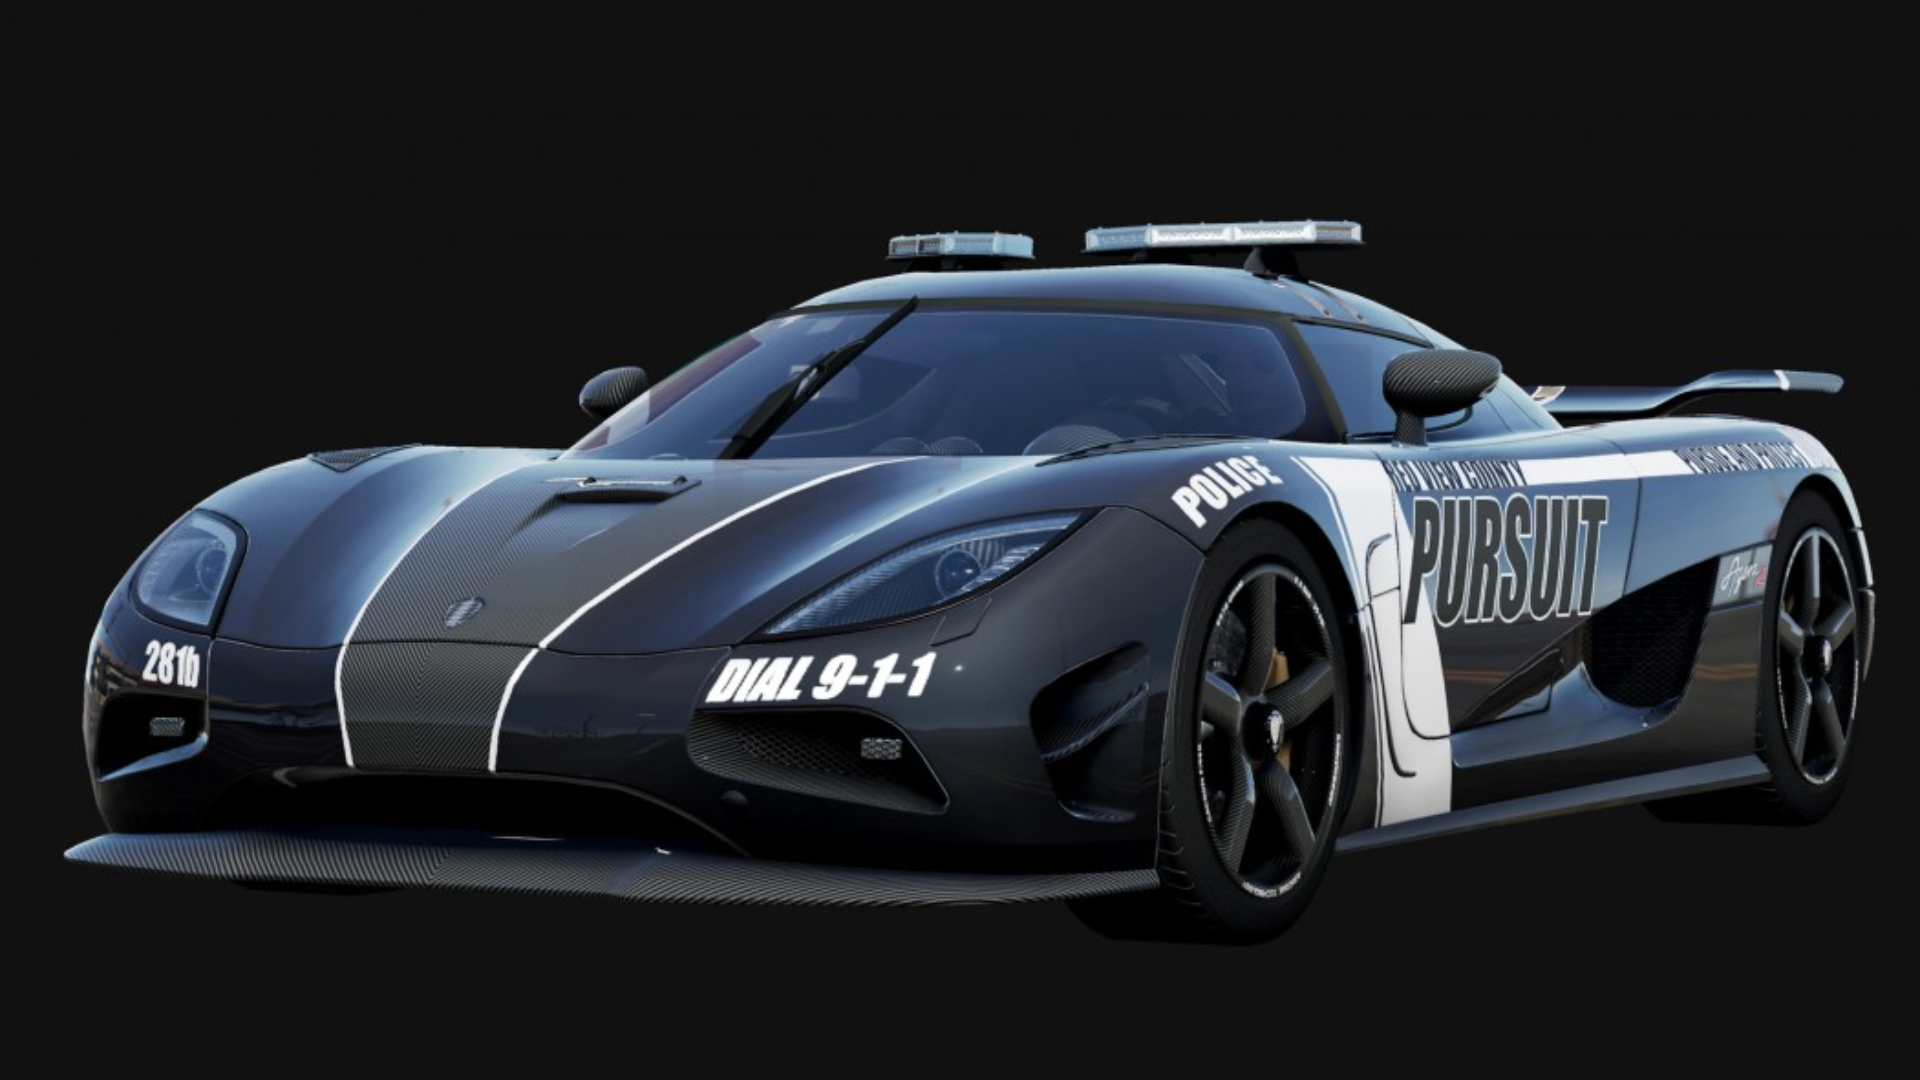 Koenigsegg Agera R Police Car By AcerSense